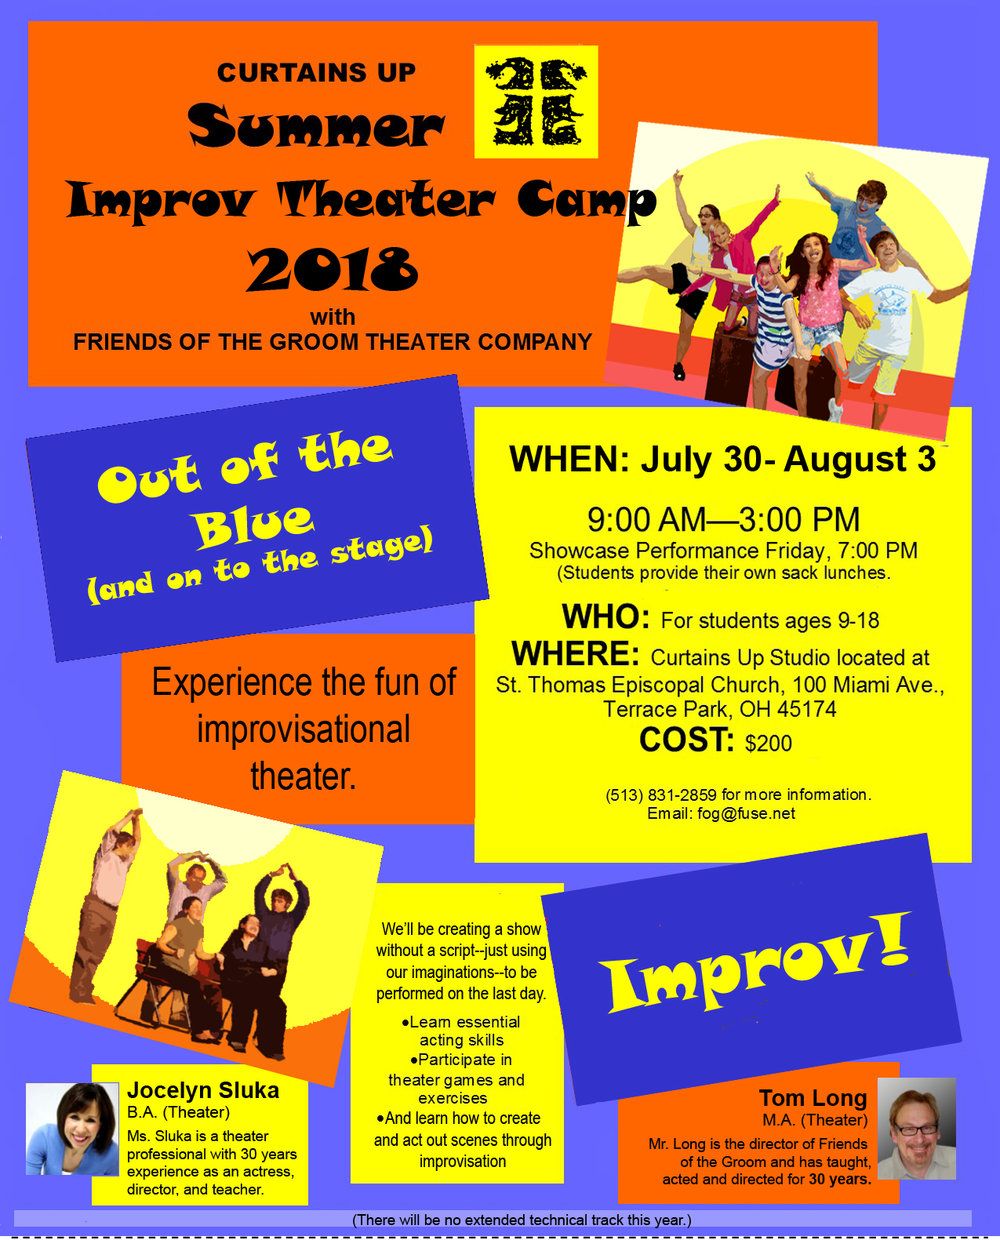 Curtains Up Summer Camp 2018 Flyer - Graphic for Website.jpg